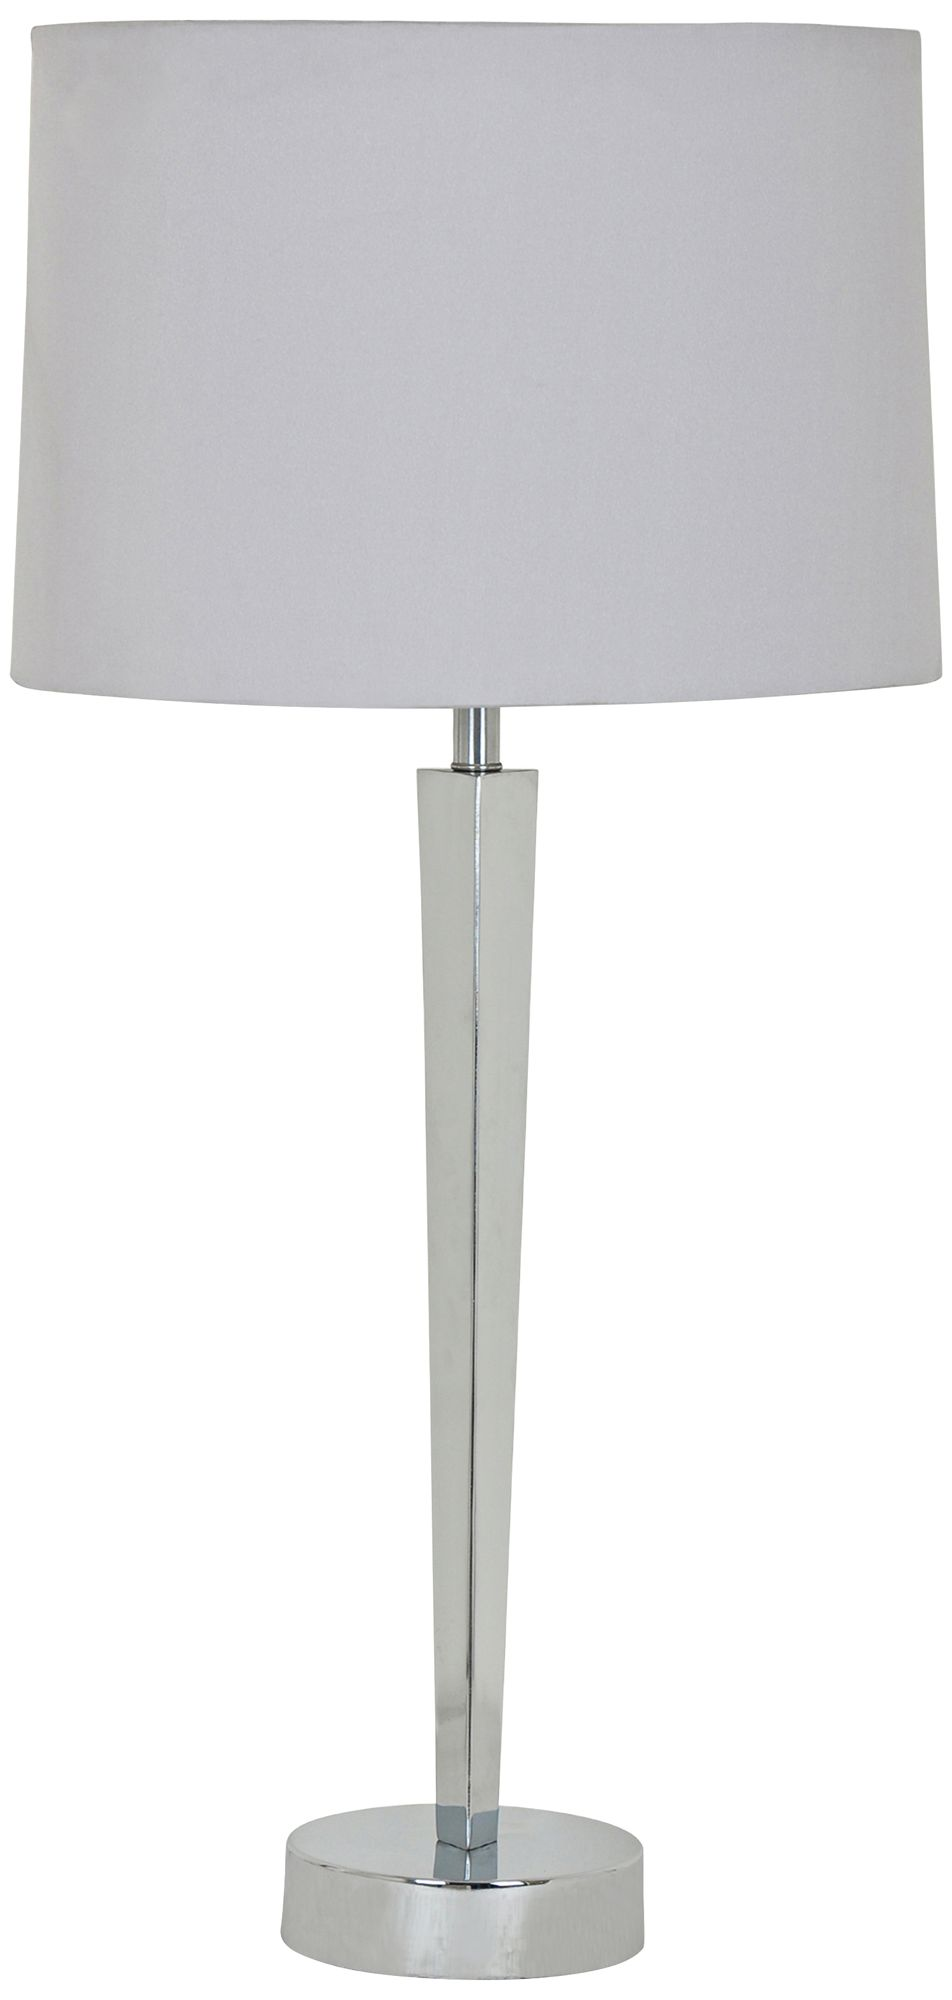 Awesome Crestview Collection Metro Polished Nickel Metal Table Lamp